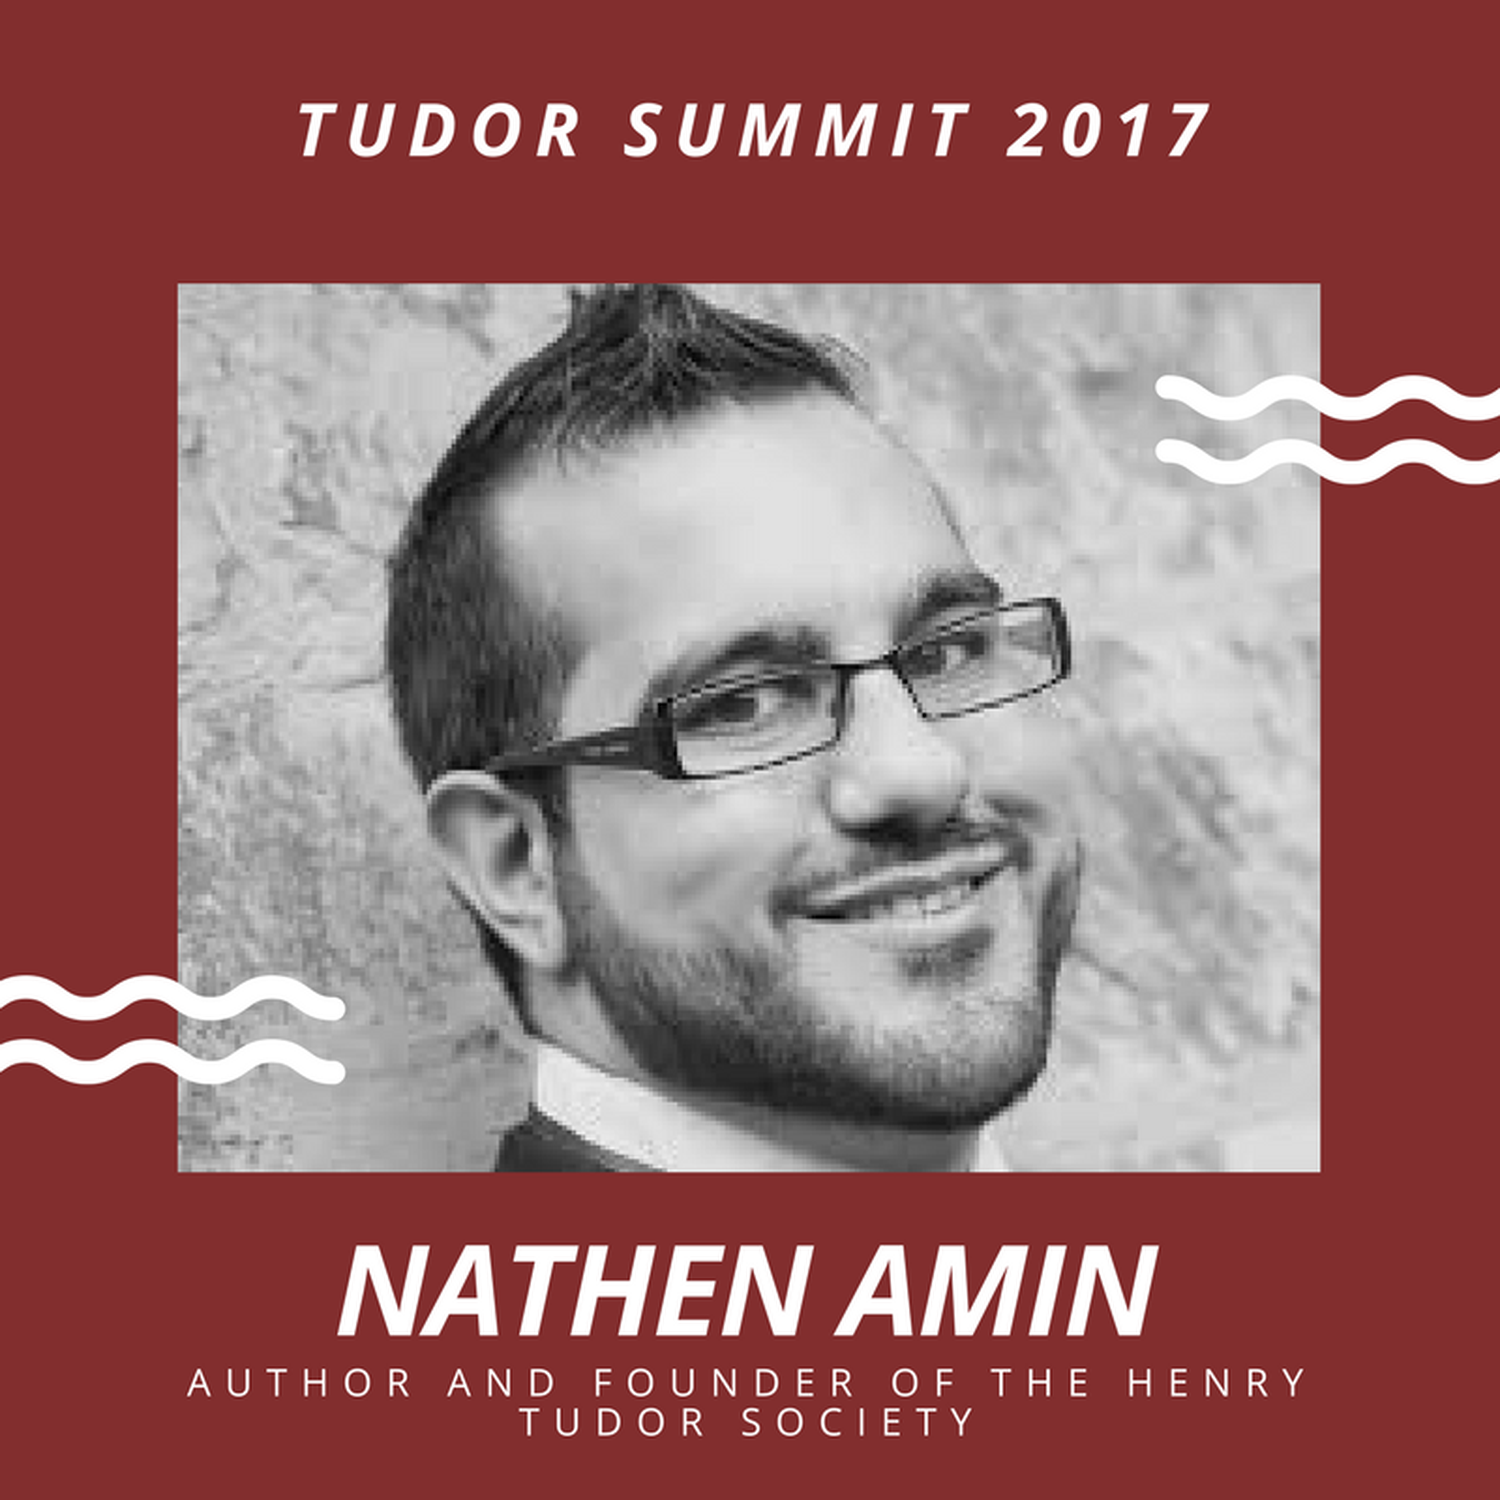 Supplementary: Nathen Amin at the Tudor Summit